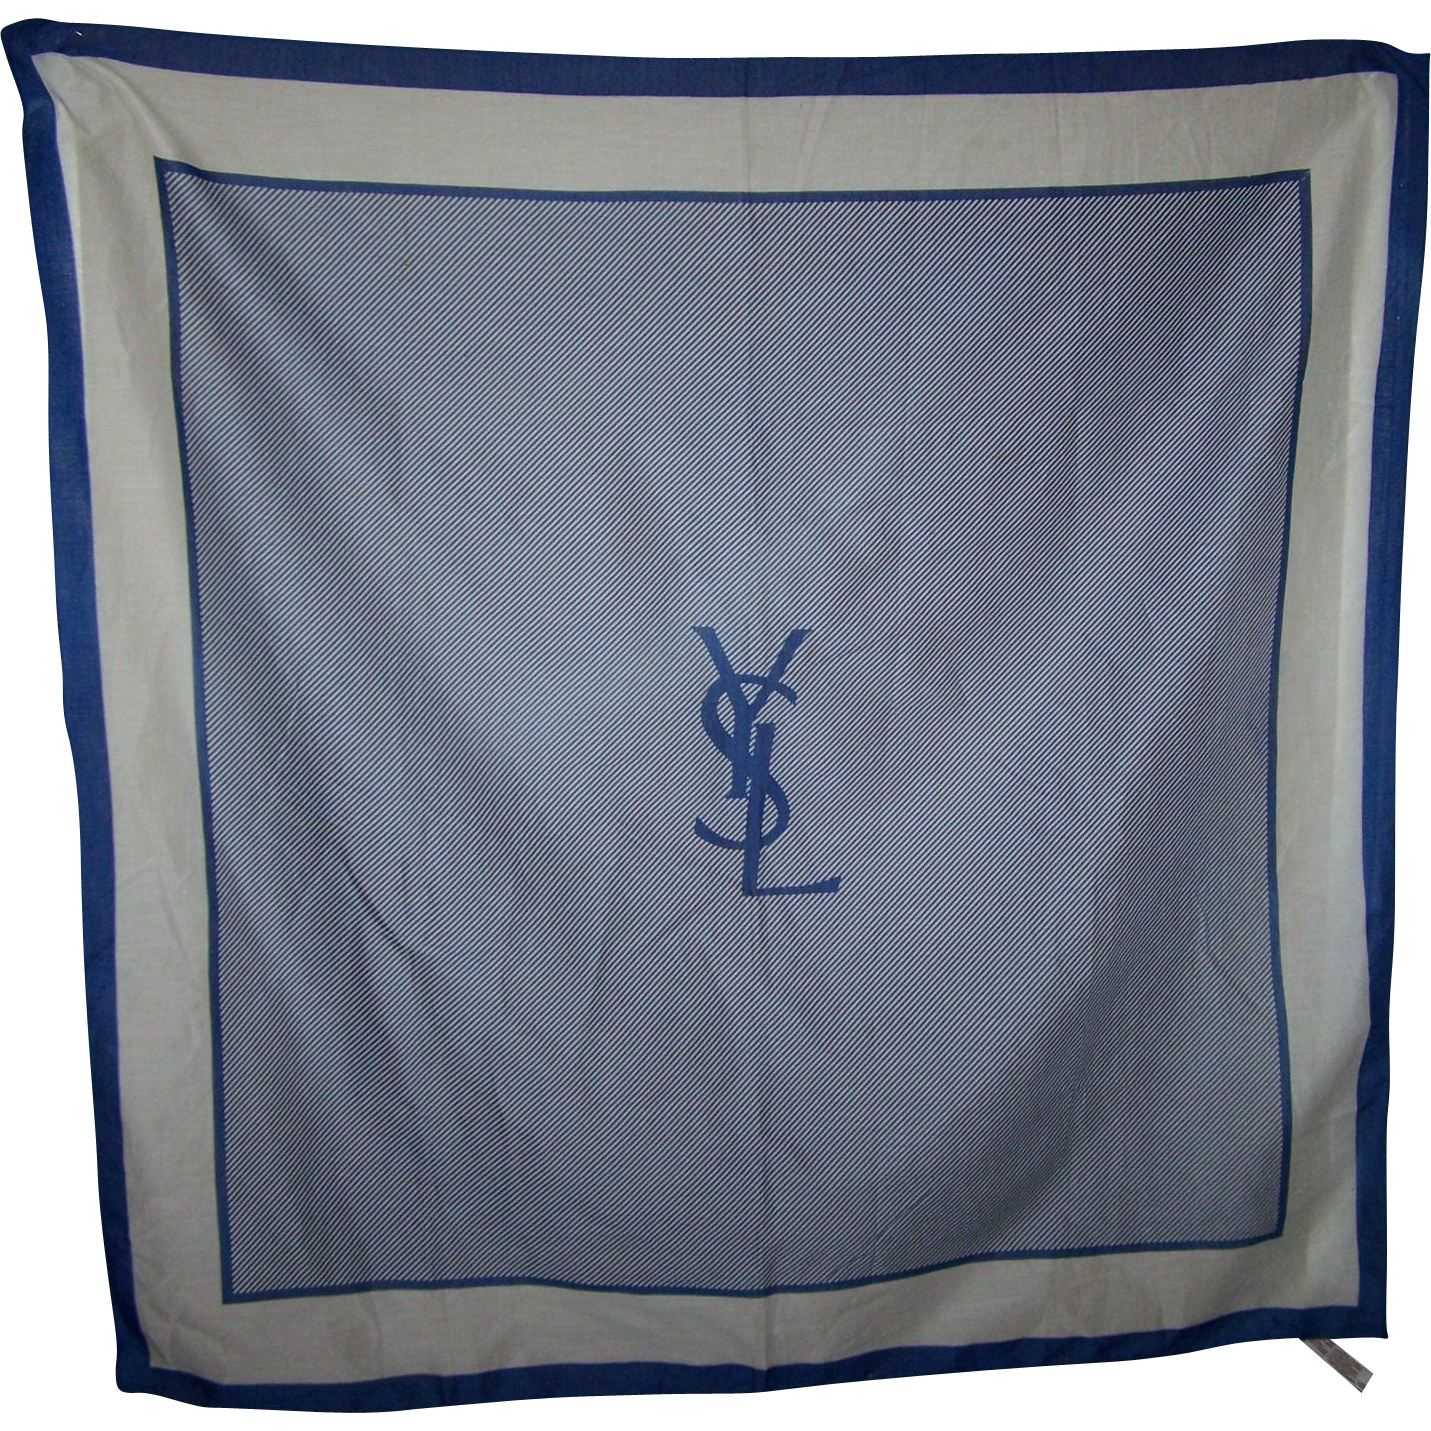 Vintage Designer YSL Yves Saint Laurent 100% Cotton Blue & White  Variation Stripe Art Scarf